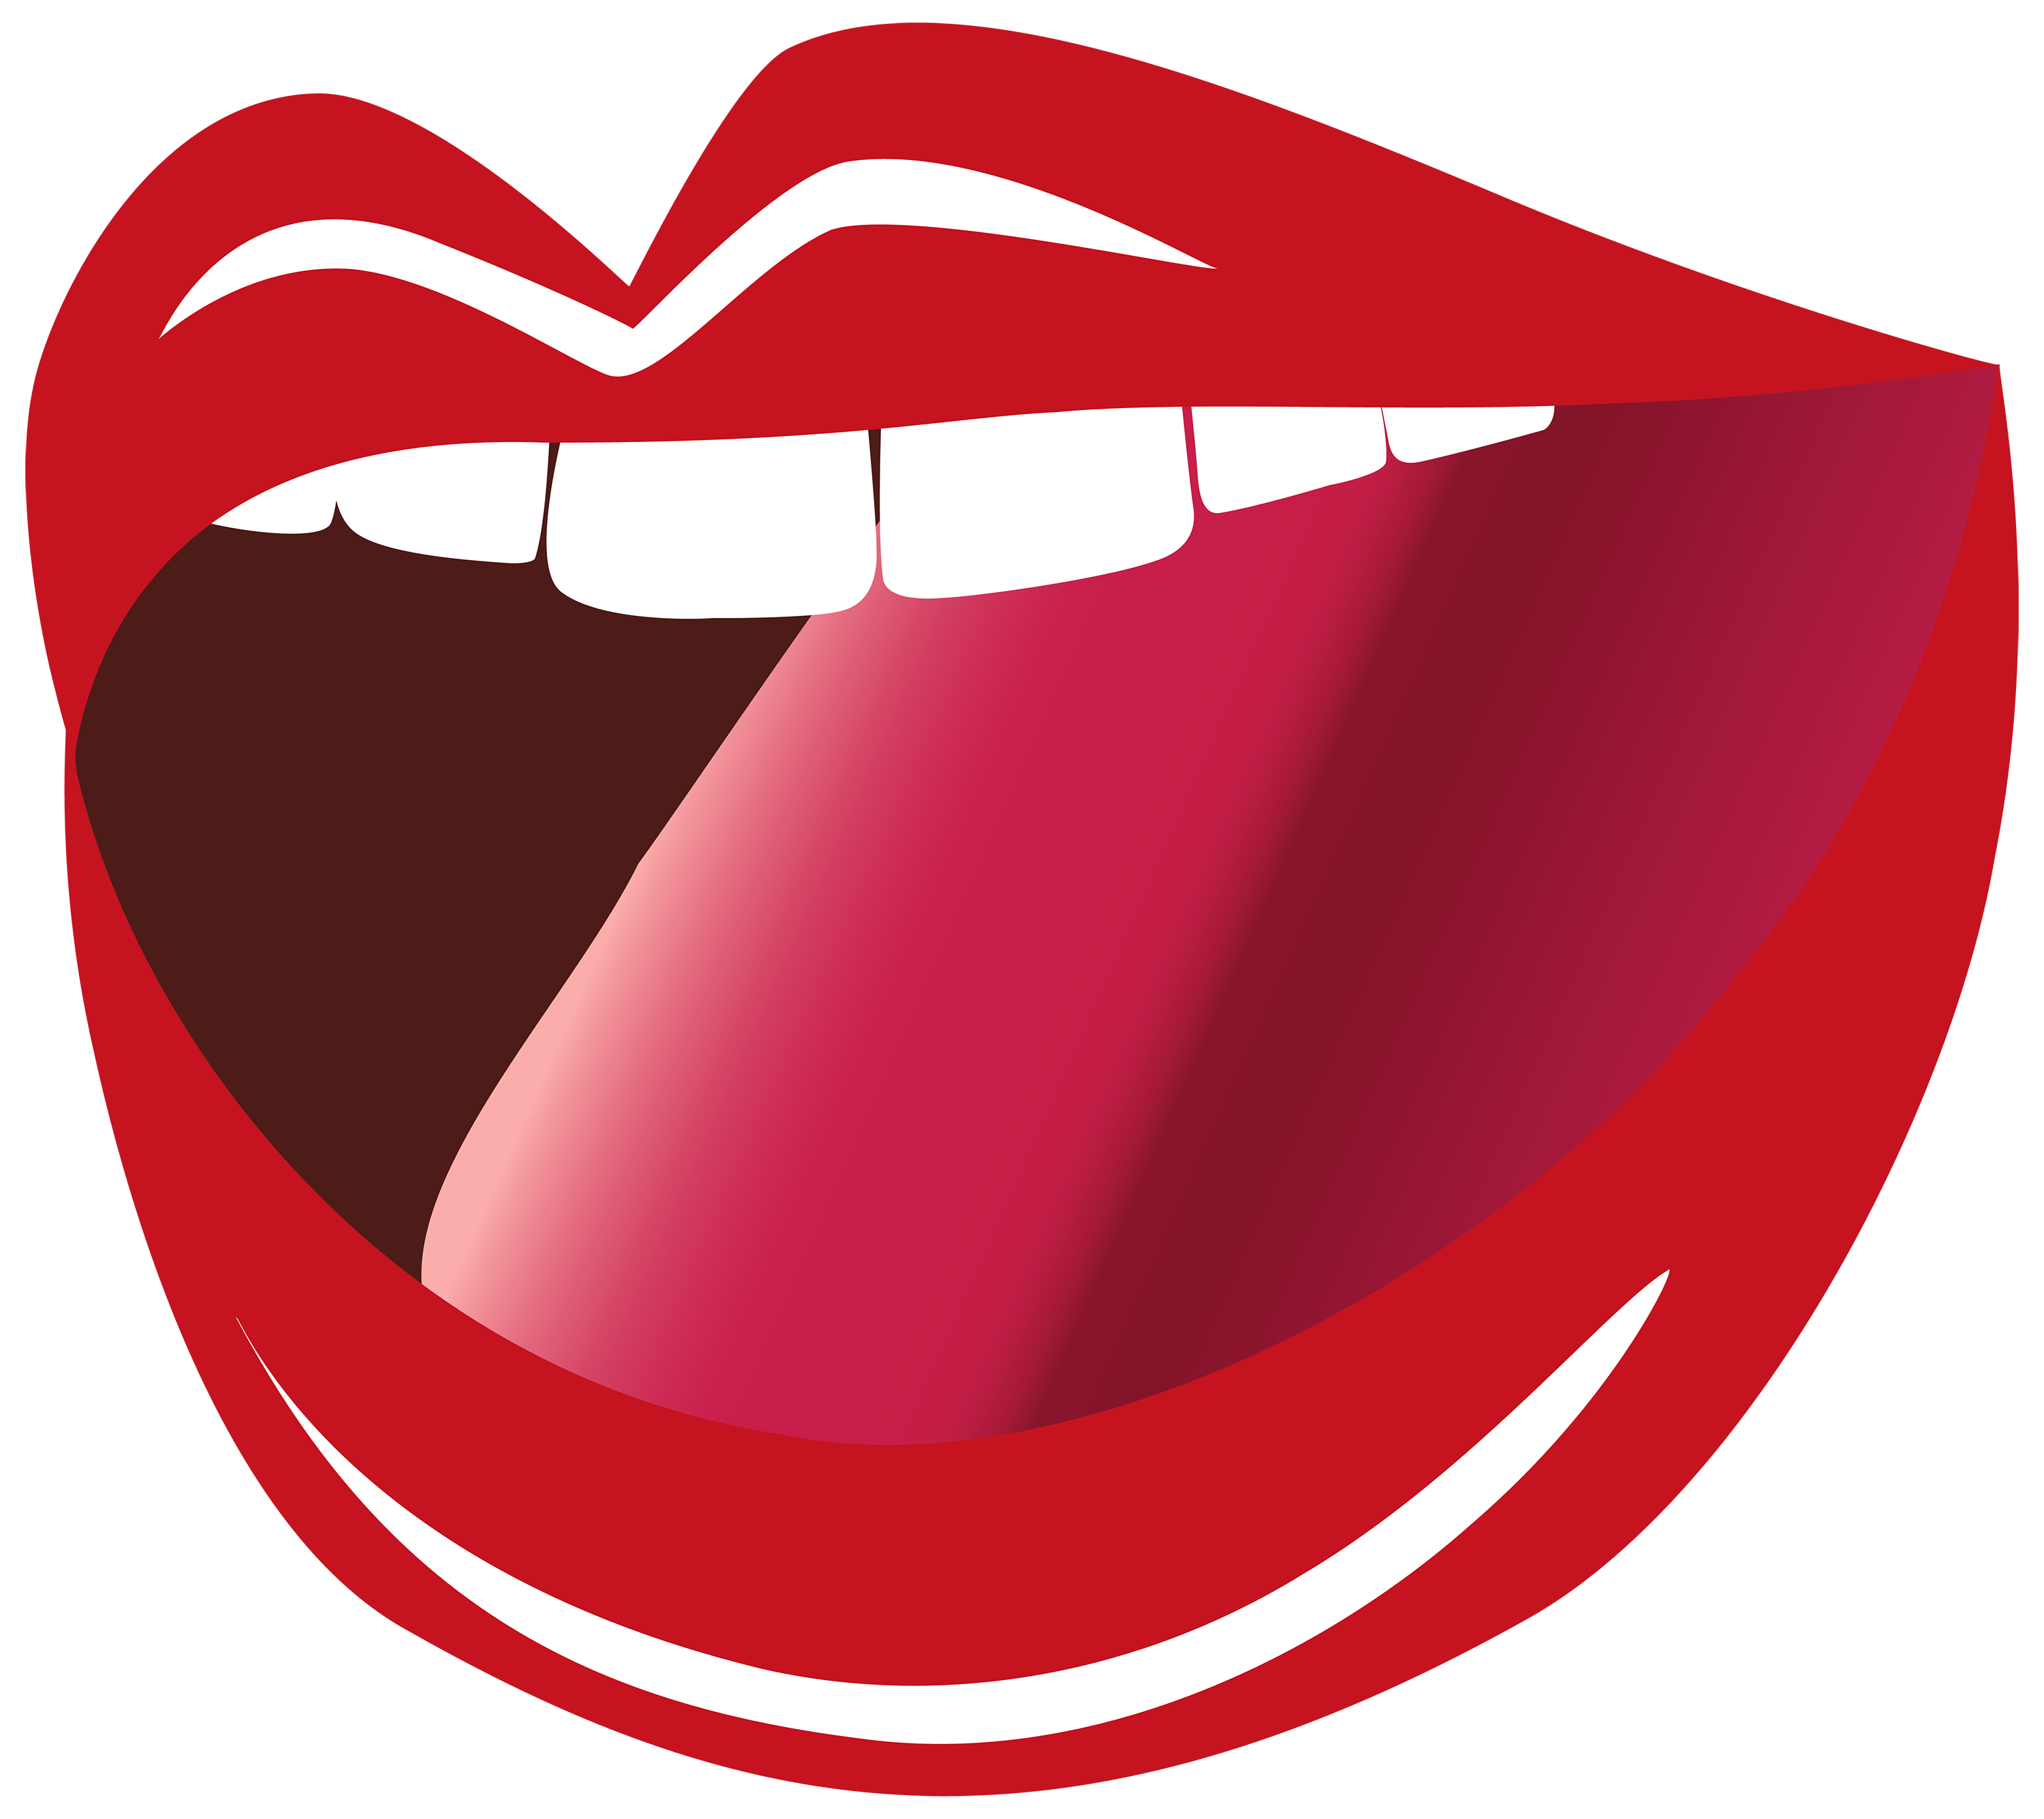 graphic royalty free download Mouth clipart lip closed. Open png image best.